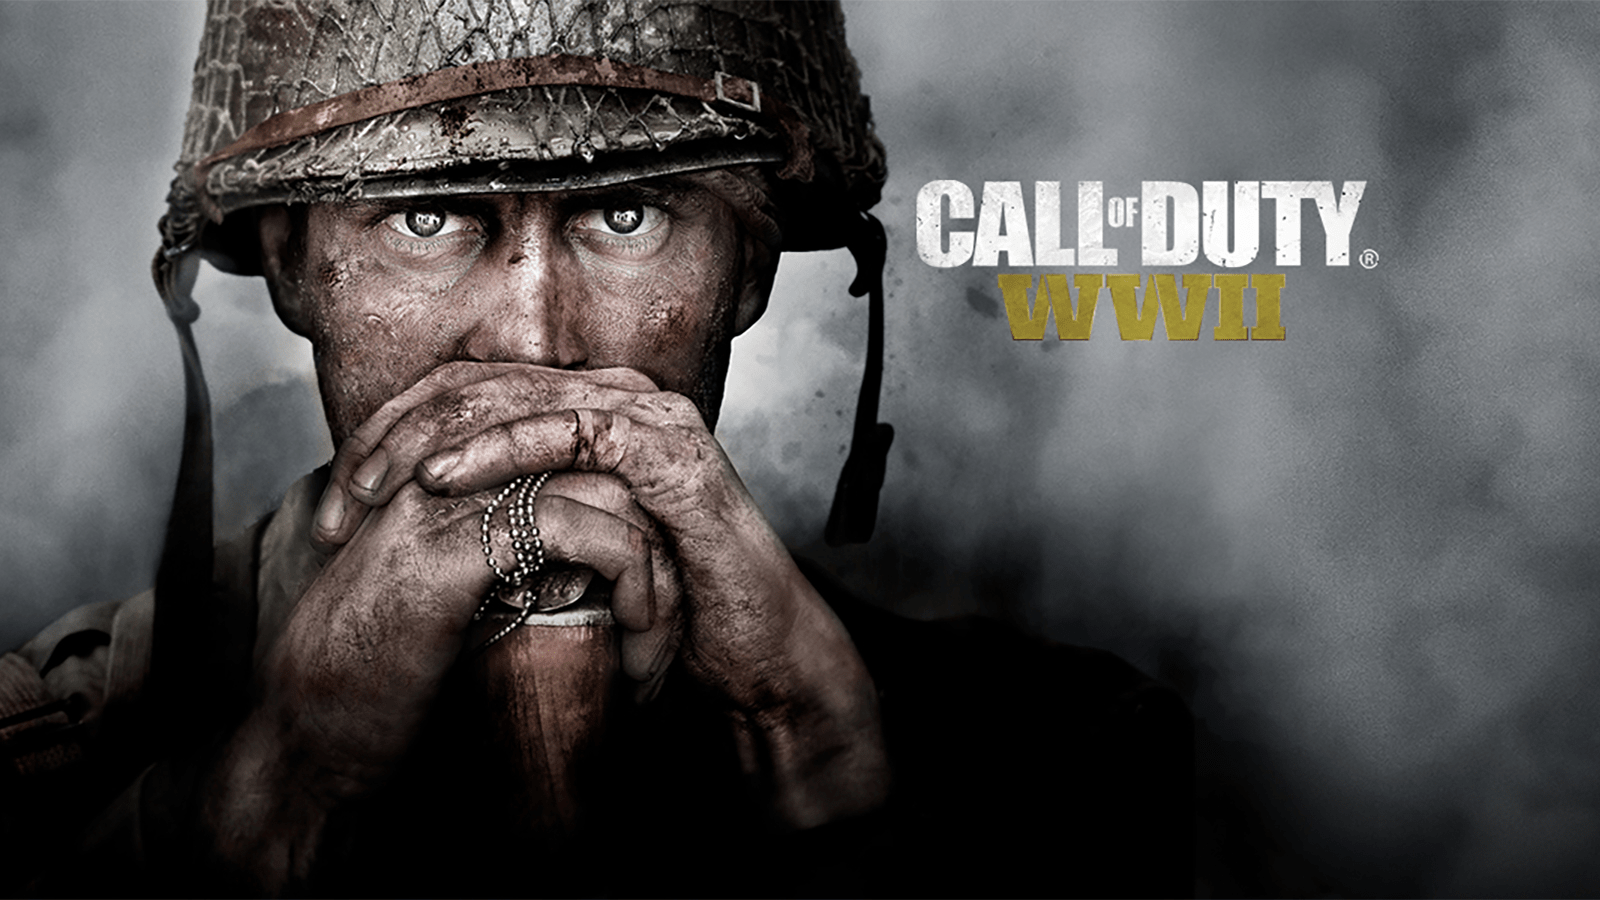 Call Of Duty Ww2 Wallpapers Top Free Call Of Duty Ww2